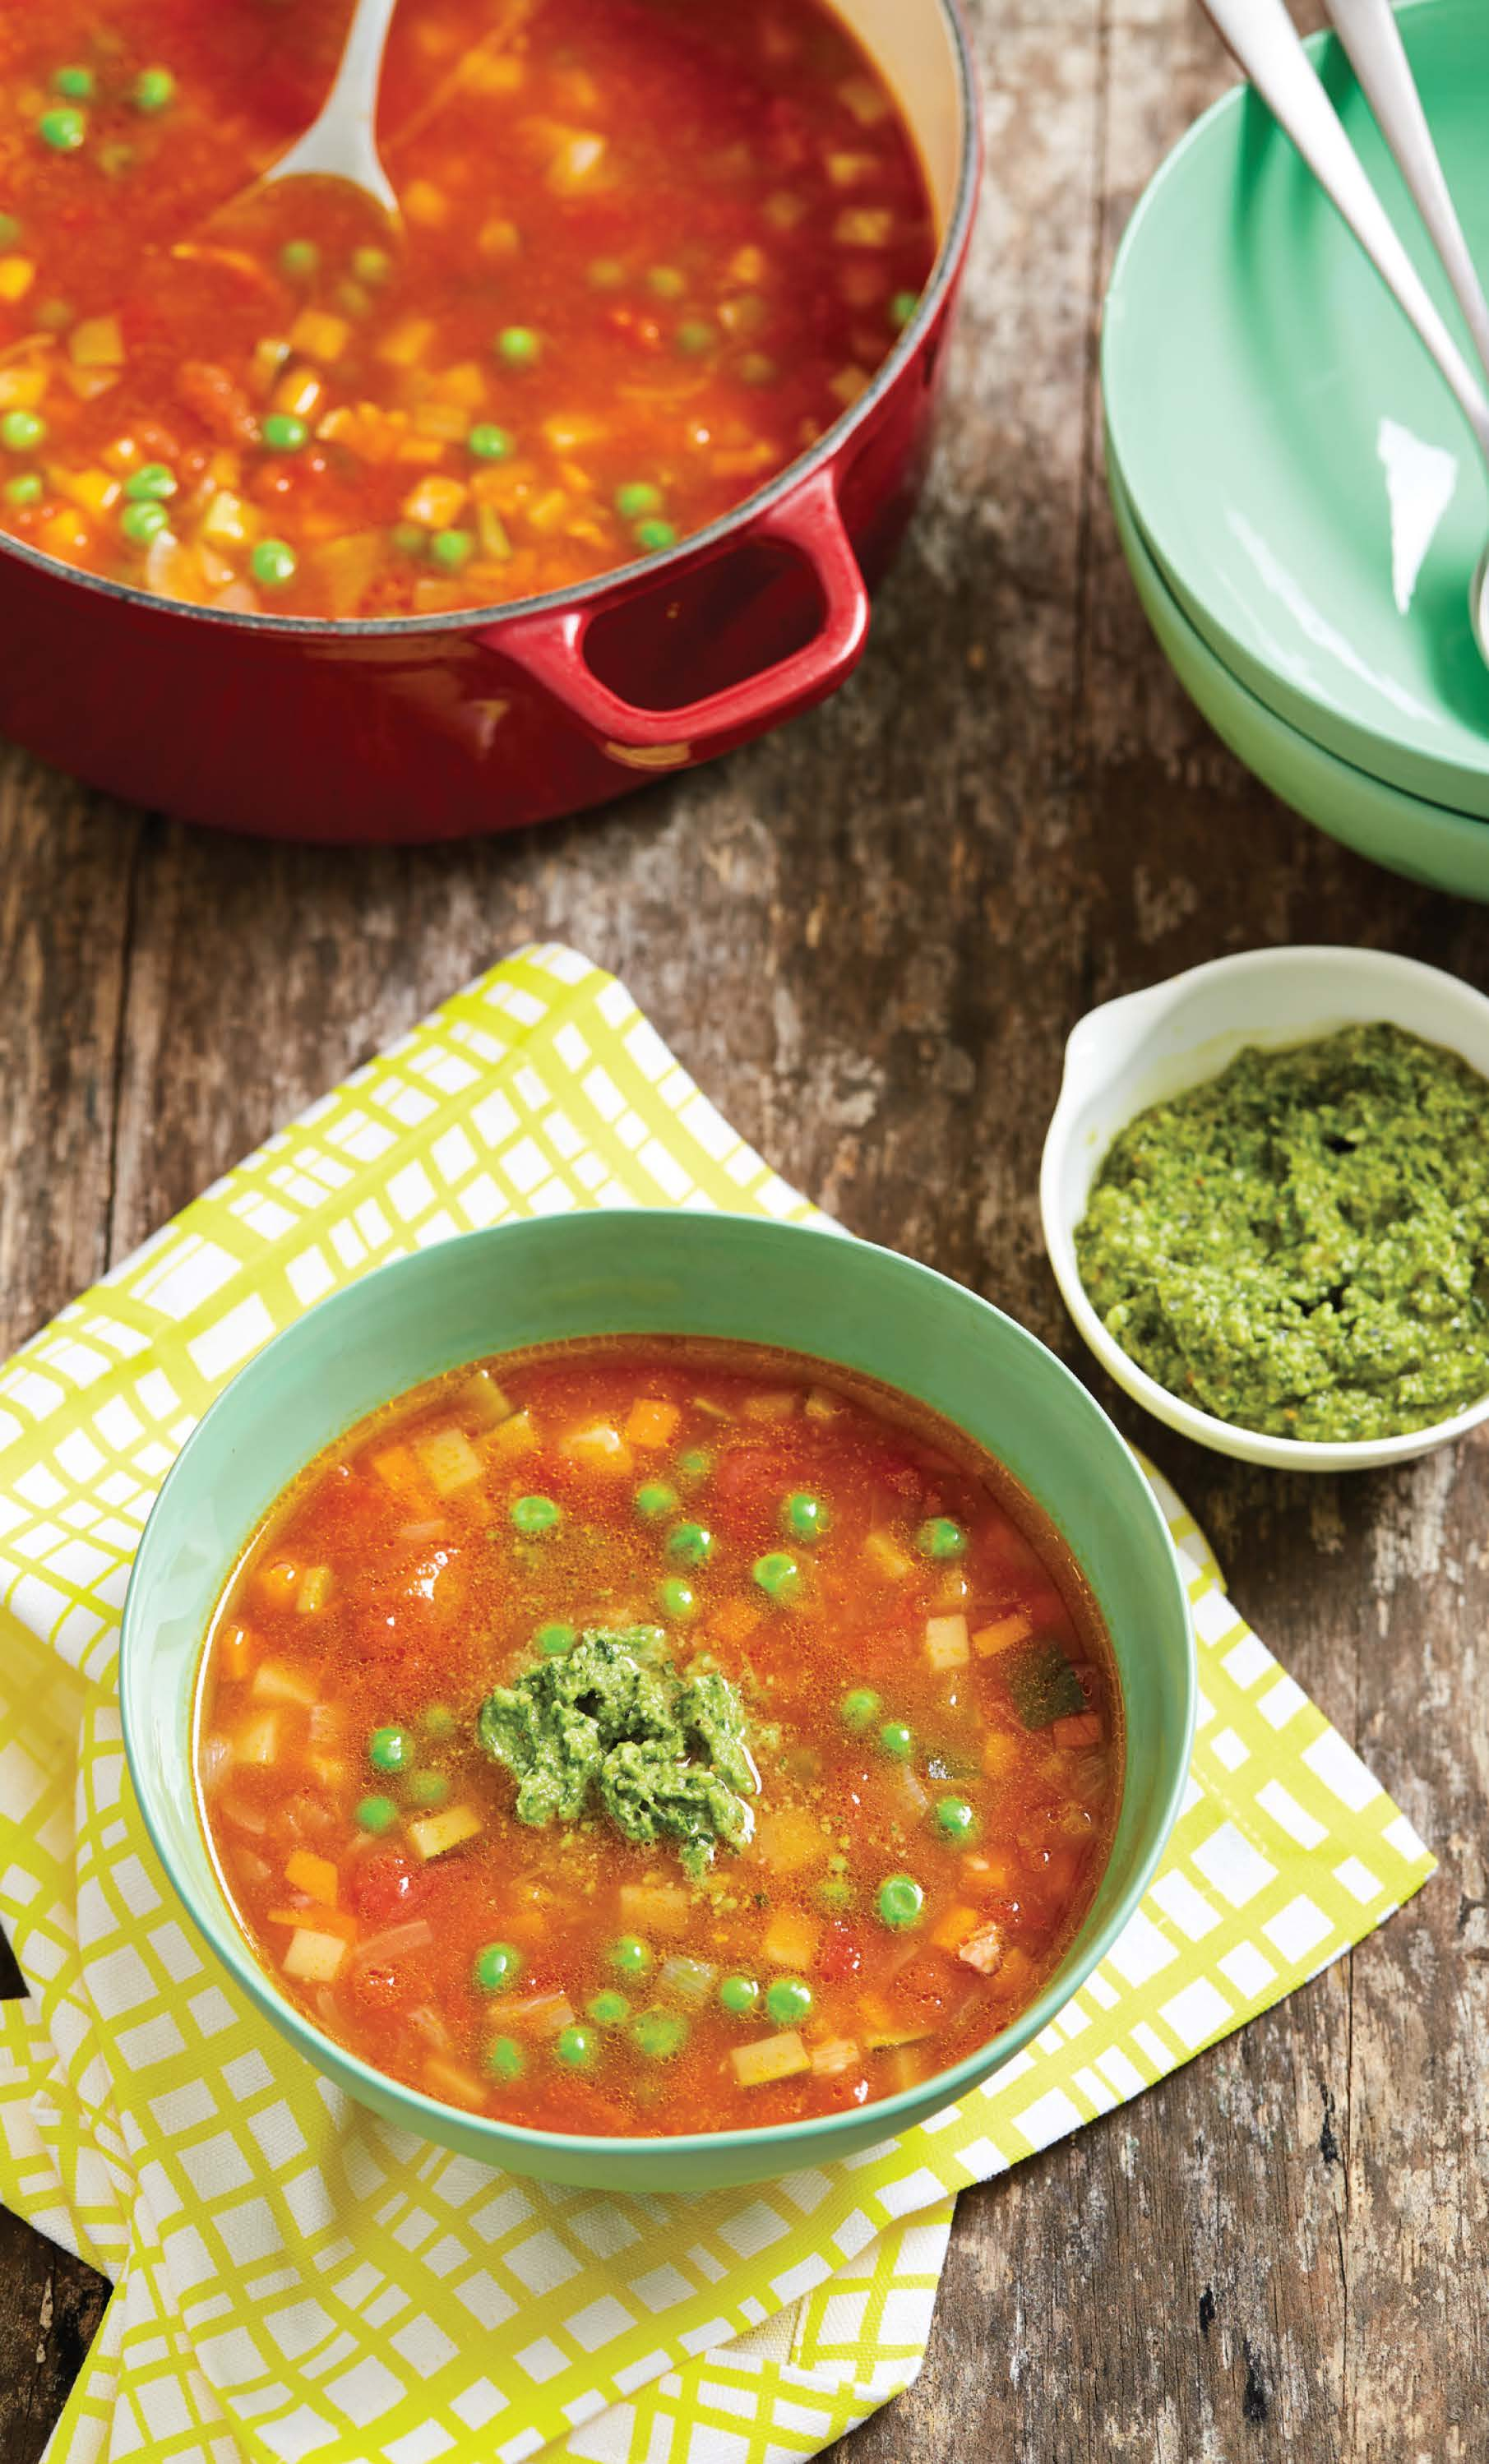 Warming vegetable and bean soup with pesto